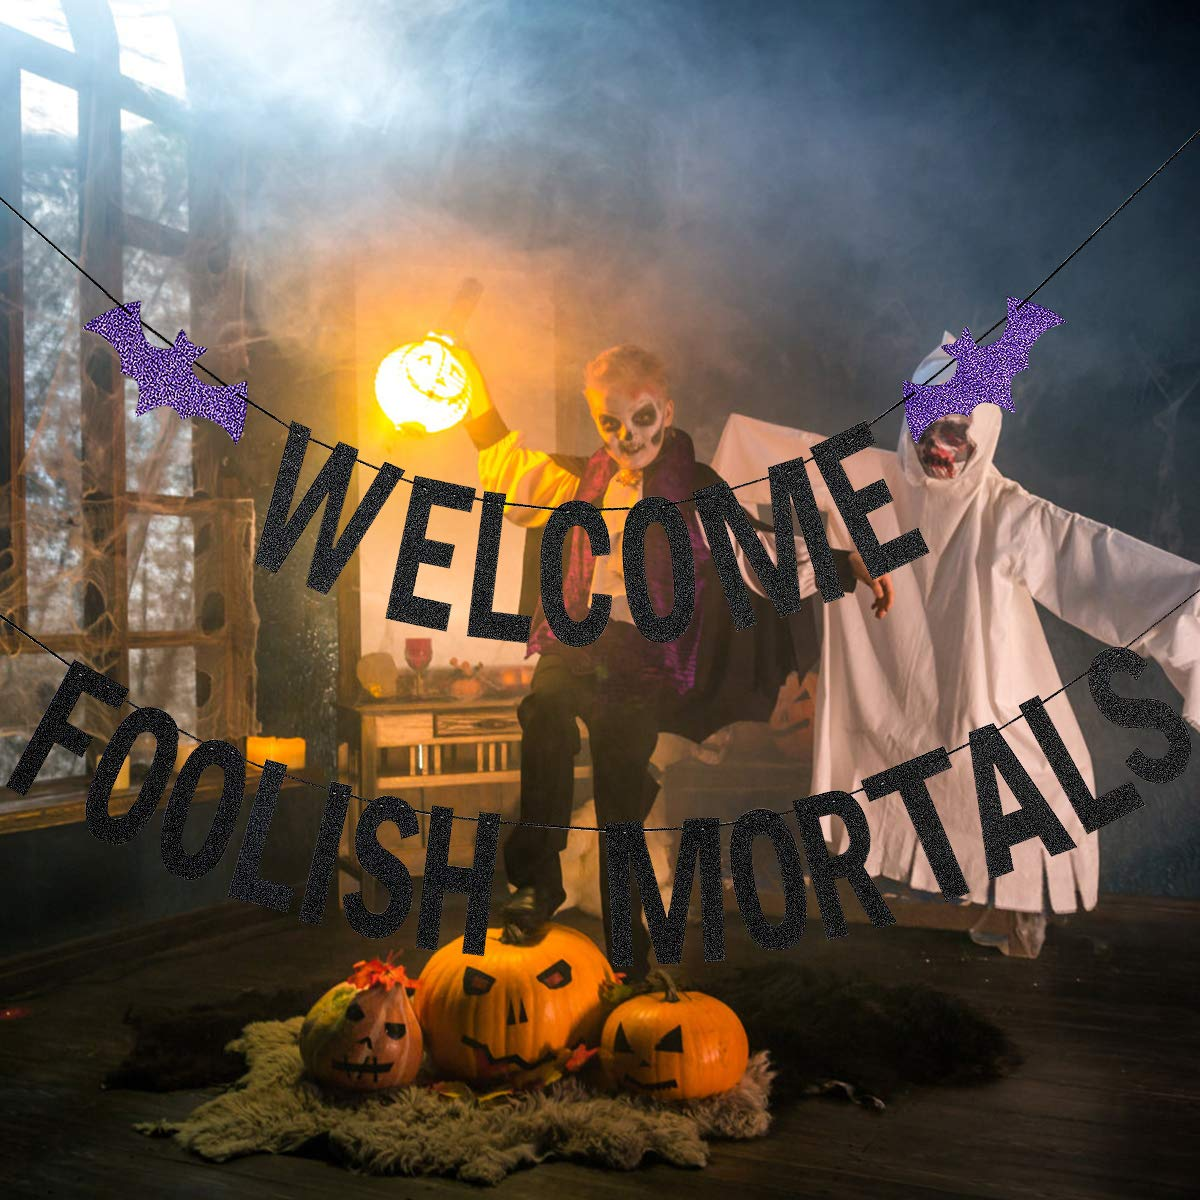 Black Glittery Welcome Foolish Mortals Banner,Halloween Party Decorations,Mantle Home Decorations